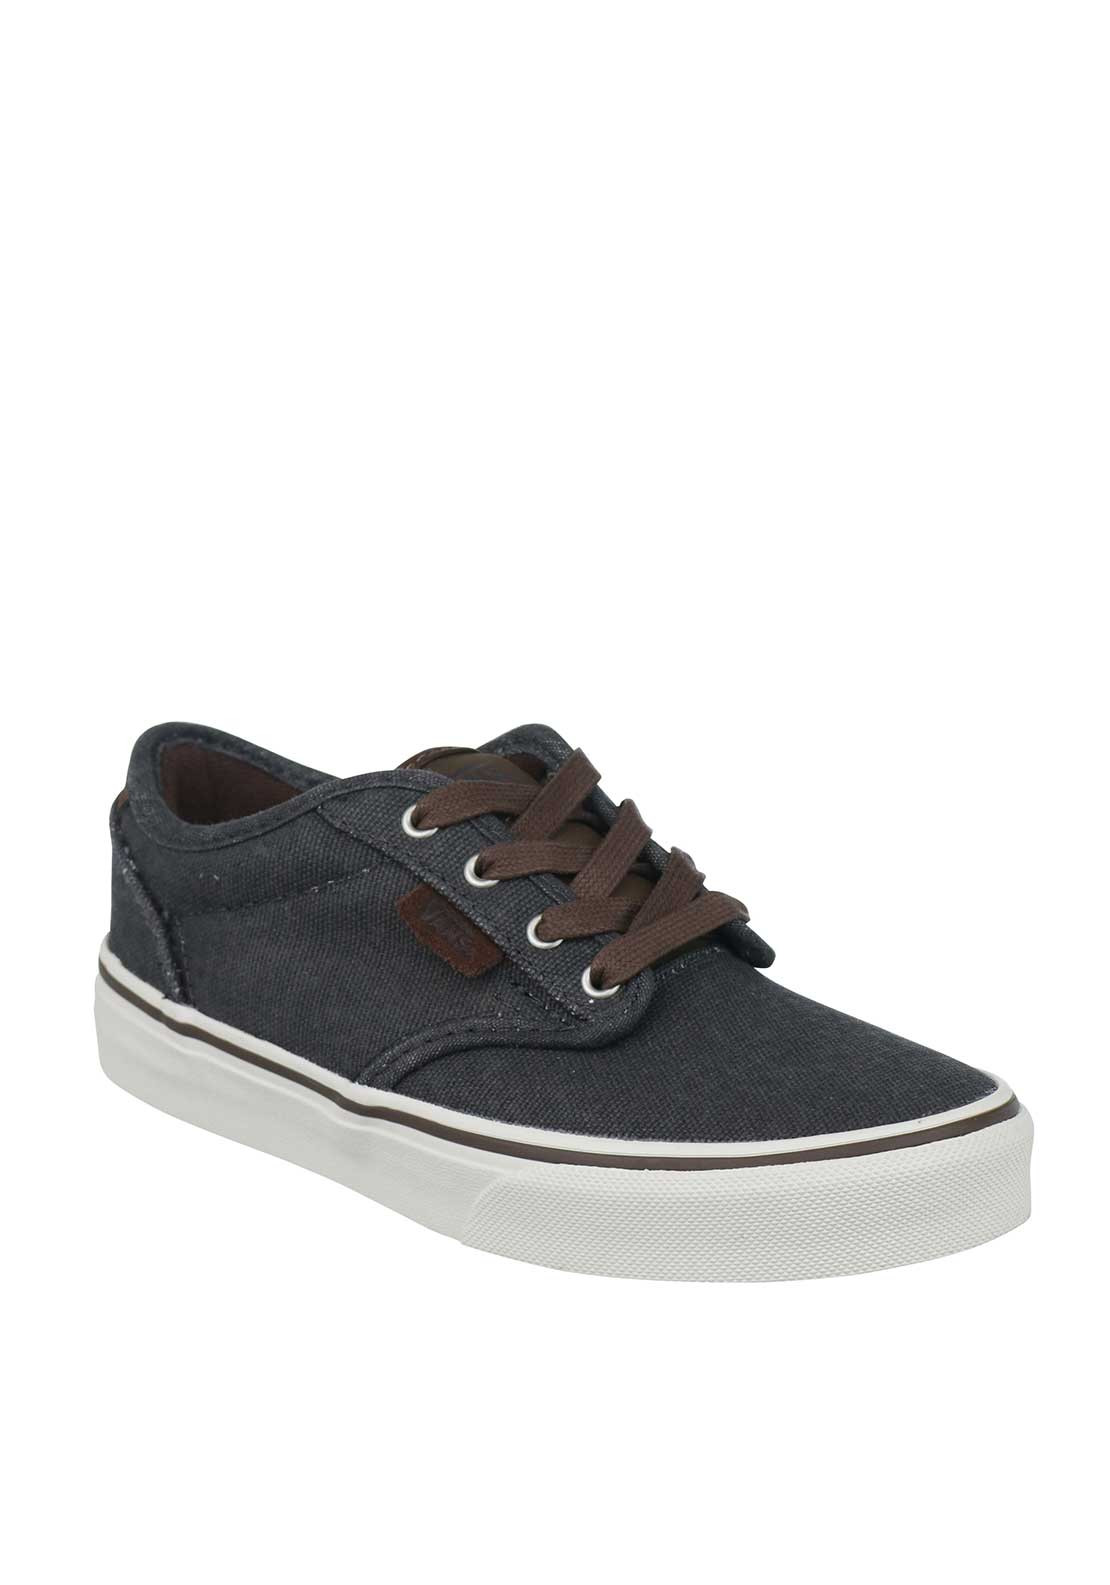 Vans Boys Authentic Canvas Trainers, Grey